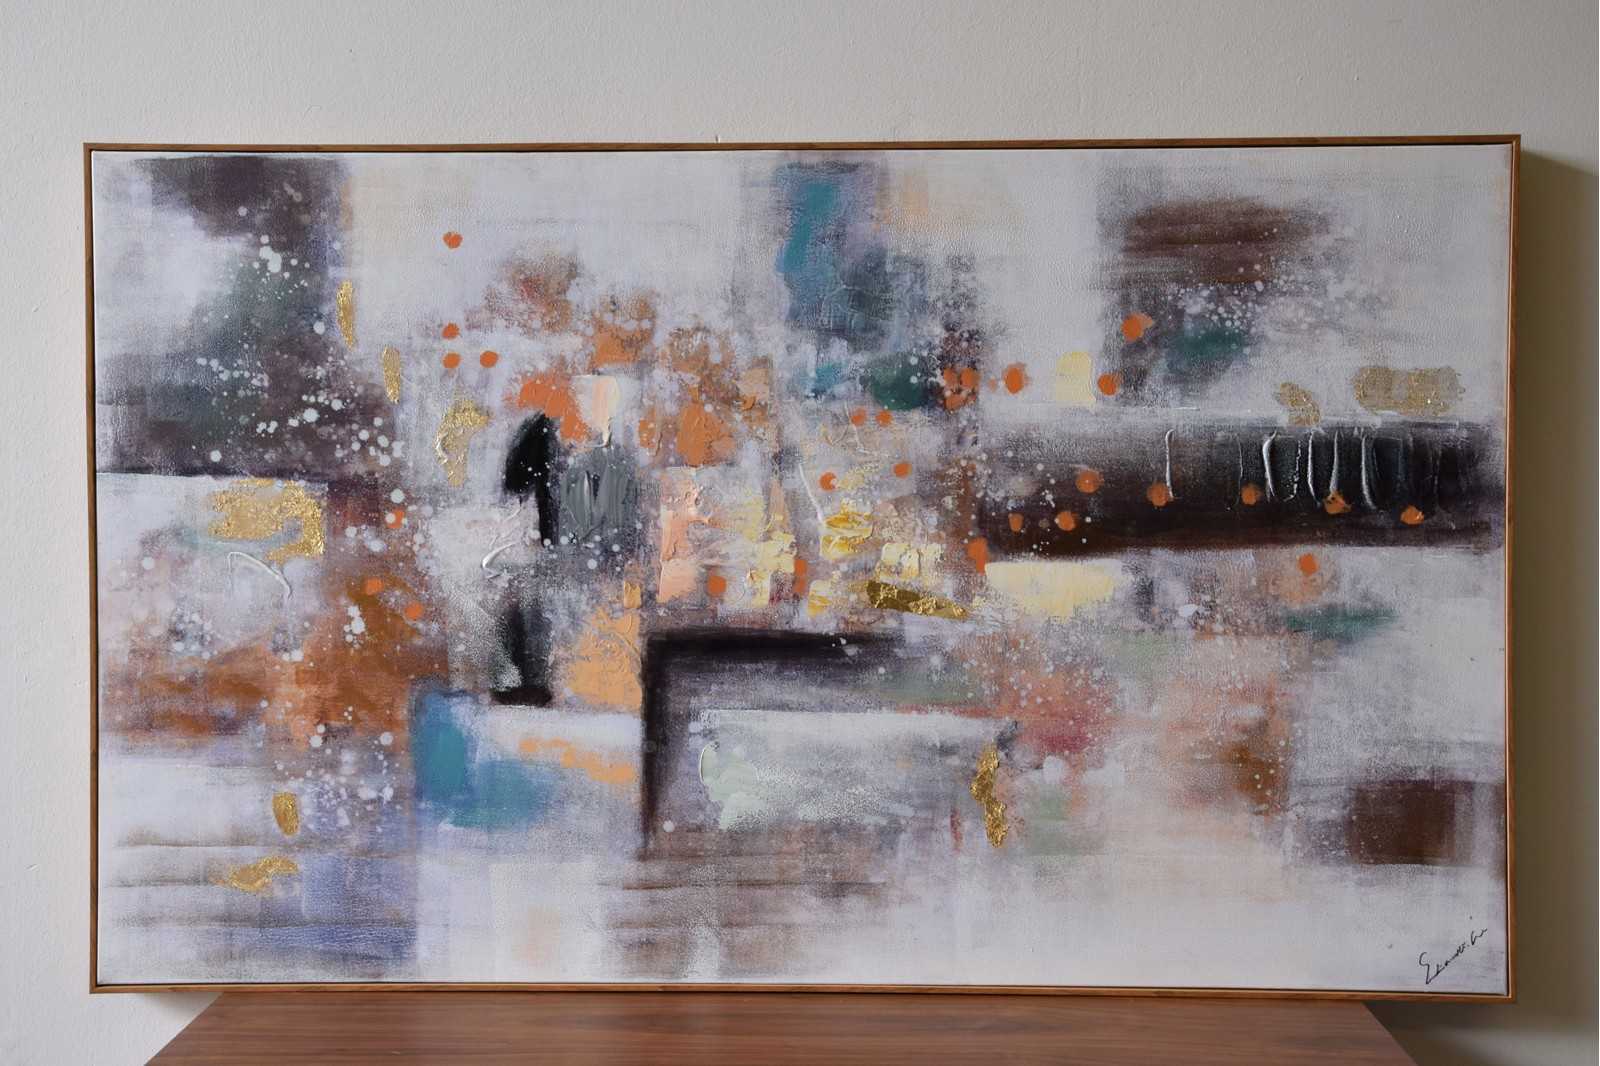 ABSTRACT PAINTING ON CANVAS WITH FRAME